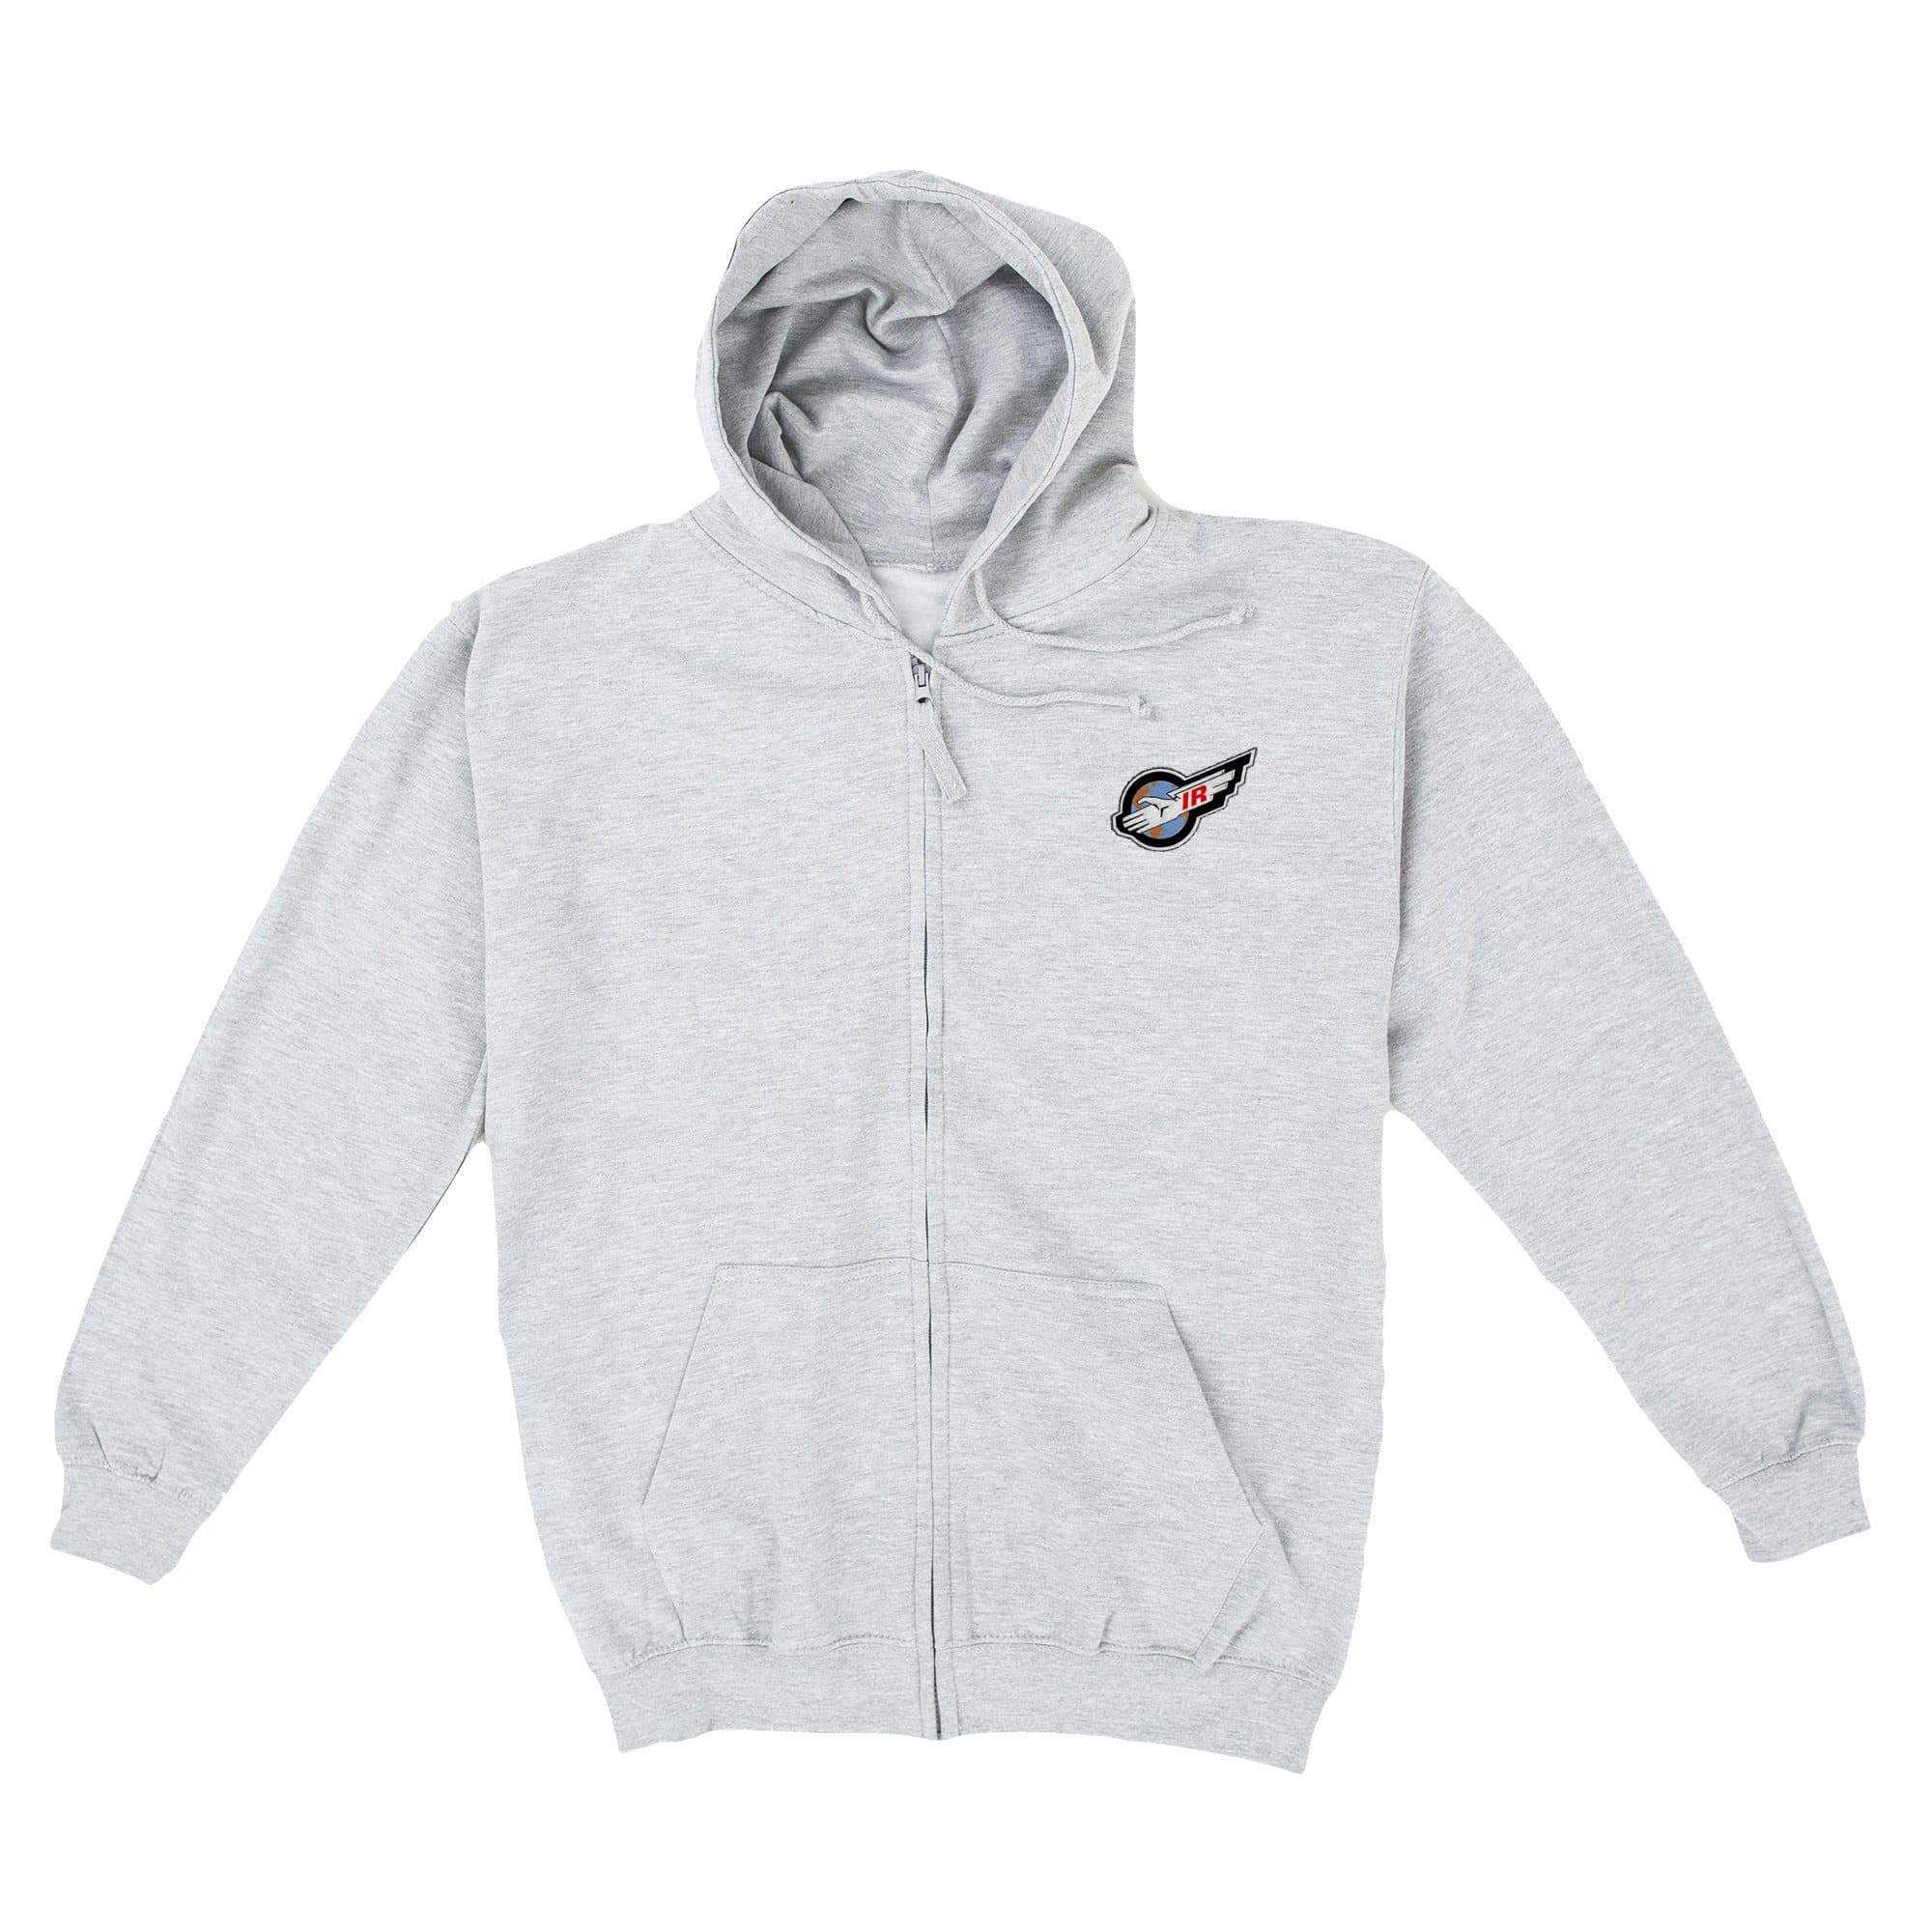 International Rescue/Thunderbirds Men's Zipped Hoodie With Embroidery [Official & Exclusive] - The Gerry Anderson Store